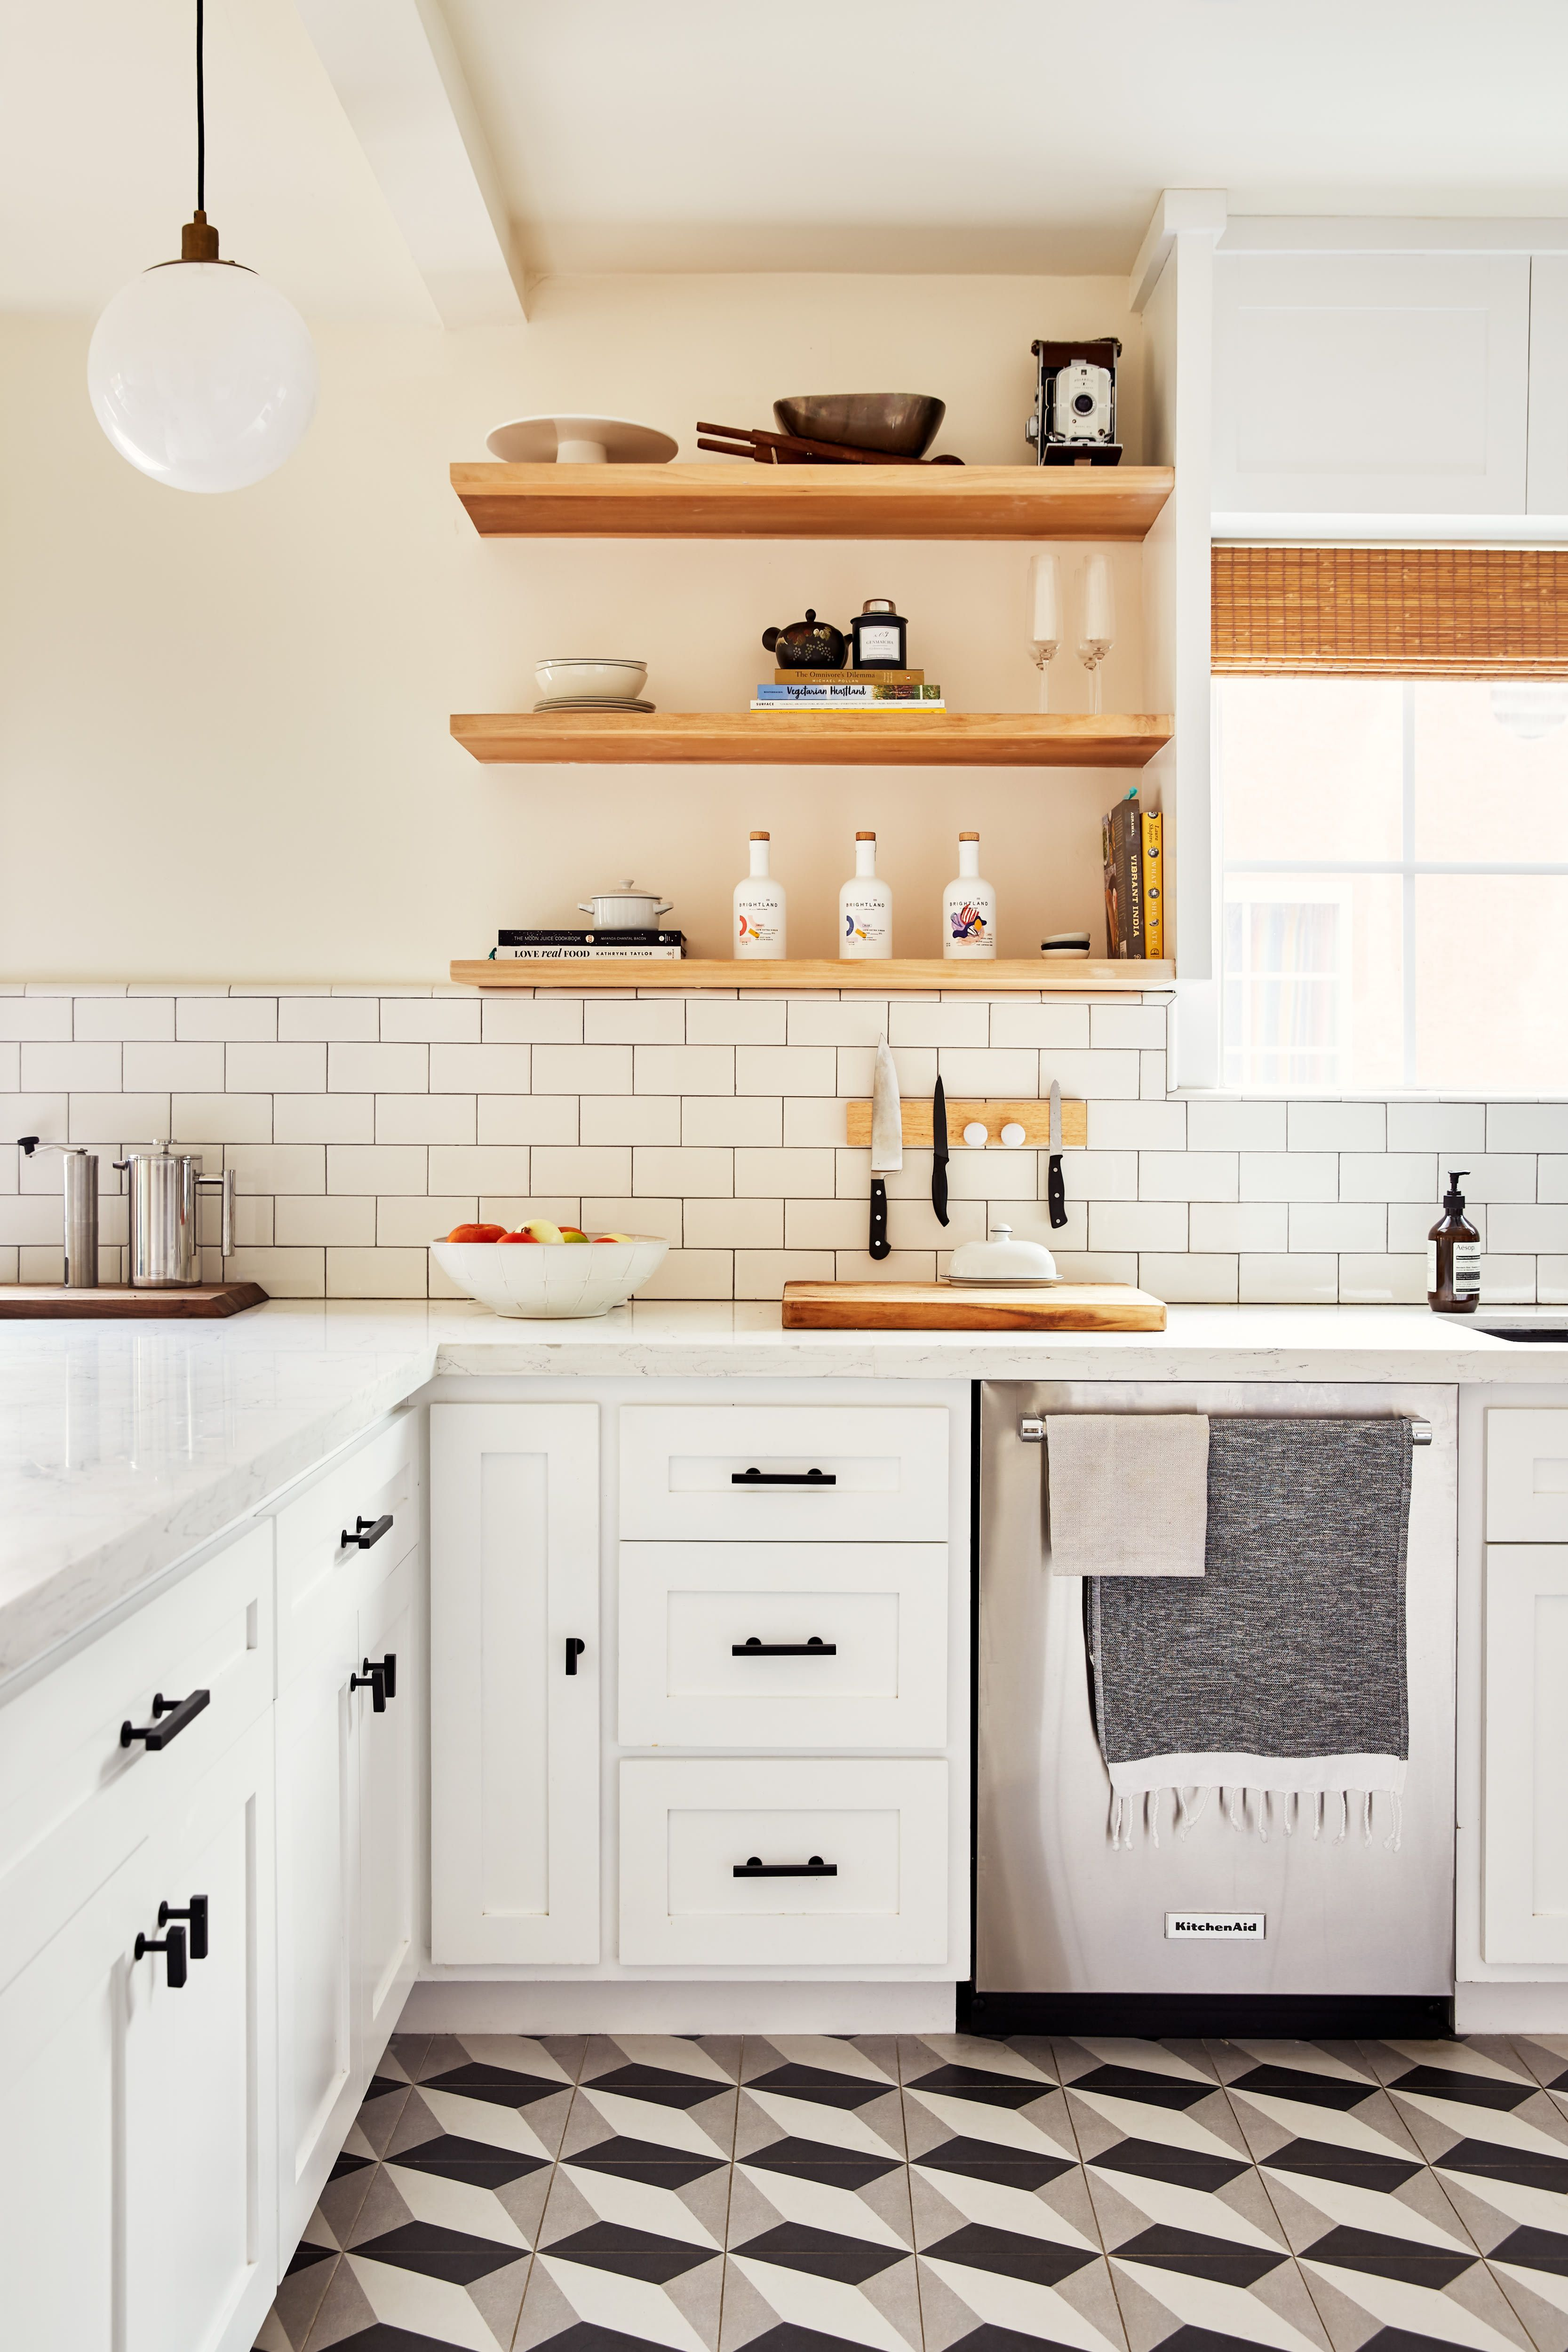 This Founder S Gorgeous La Kitchen Is Just As Bright As Her Brand Kitchen Remodel Kitchen Renovation Kitchen Cabinets